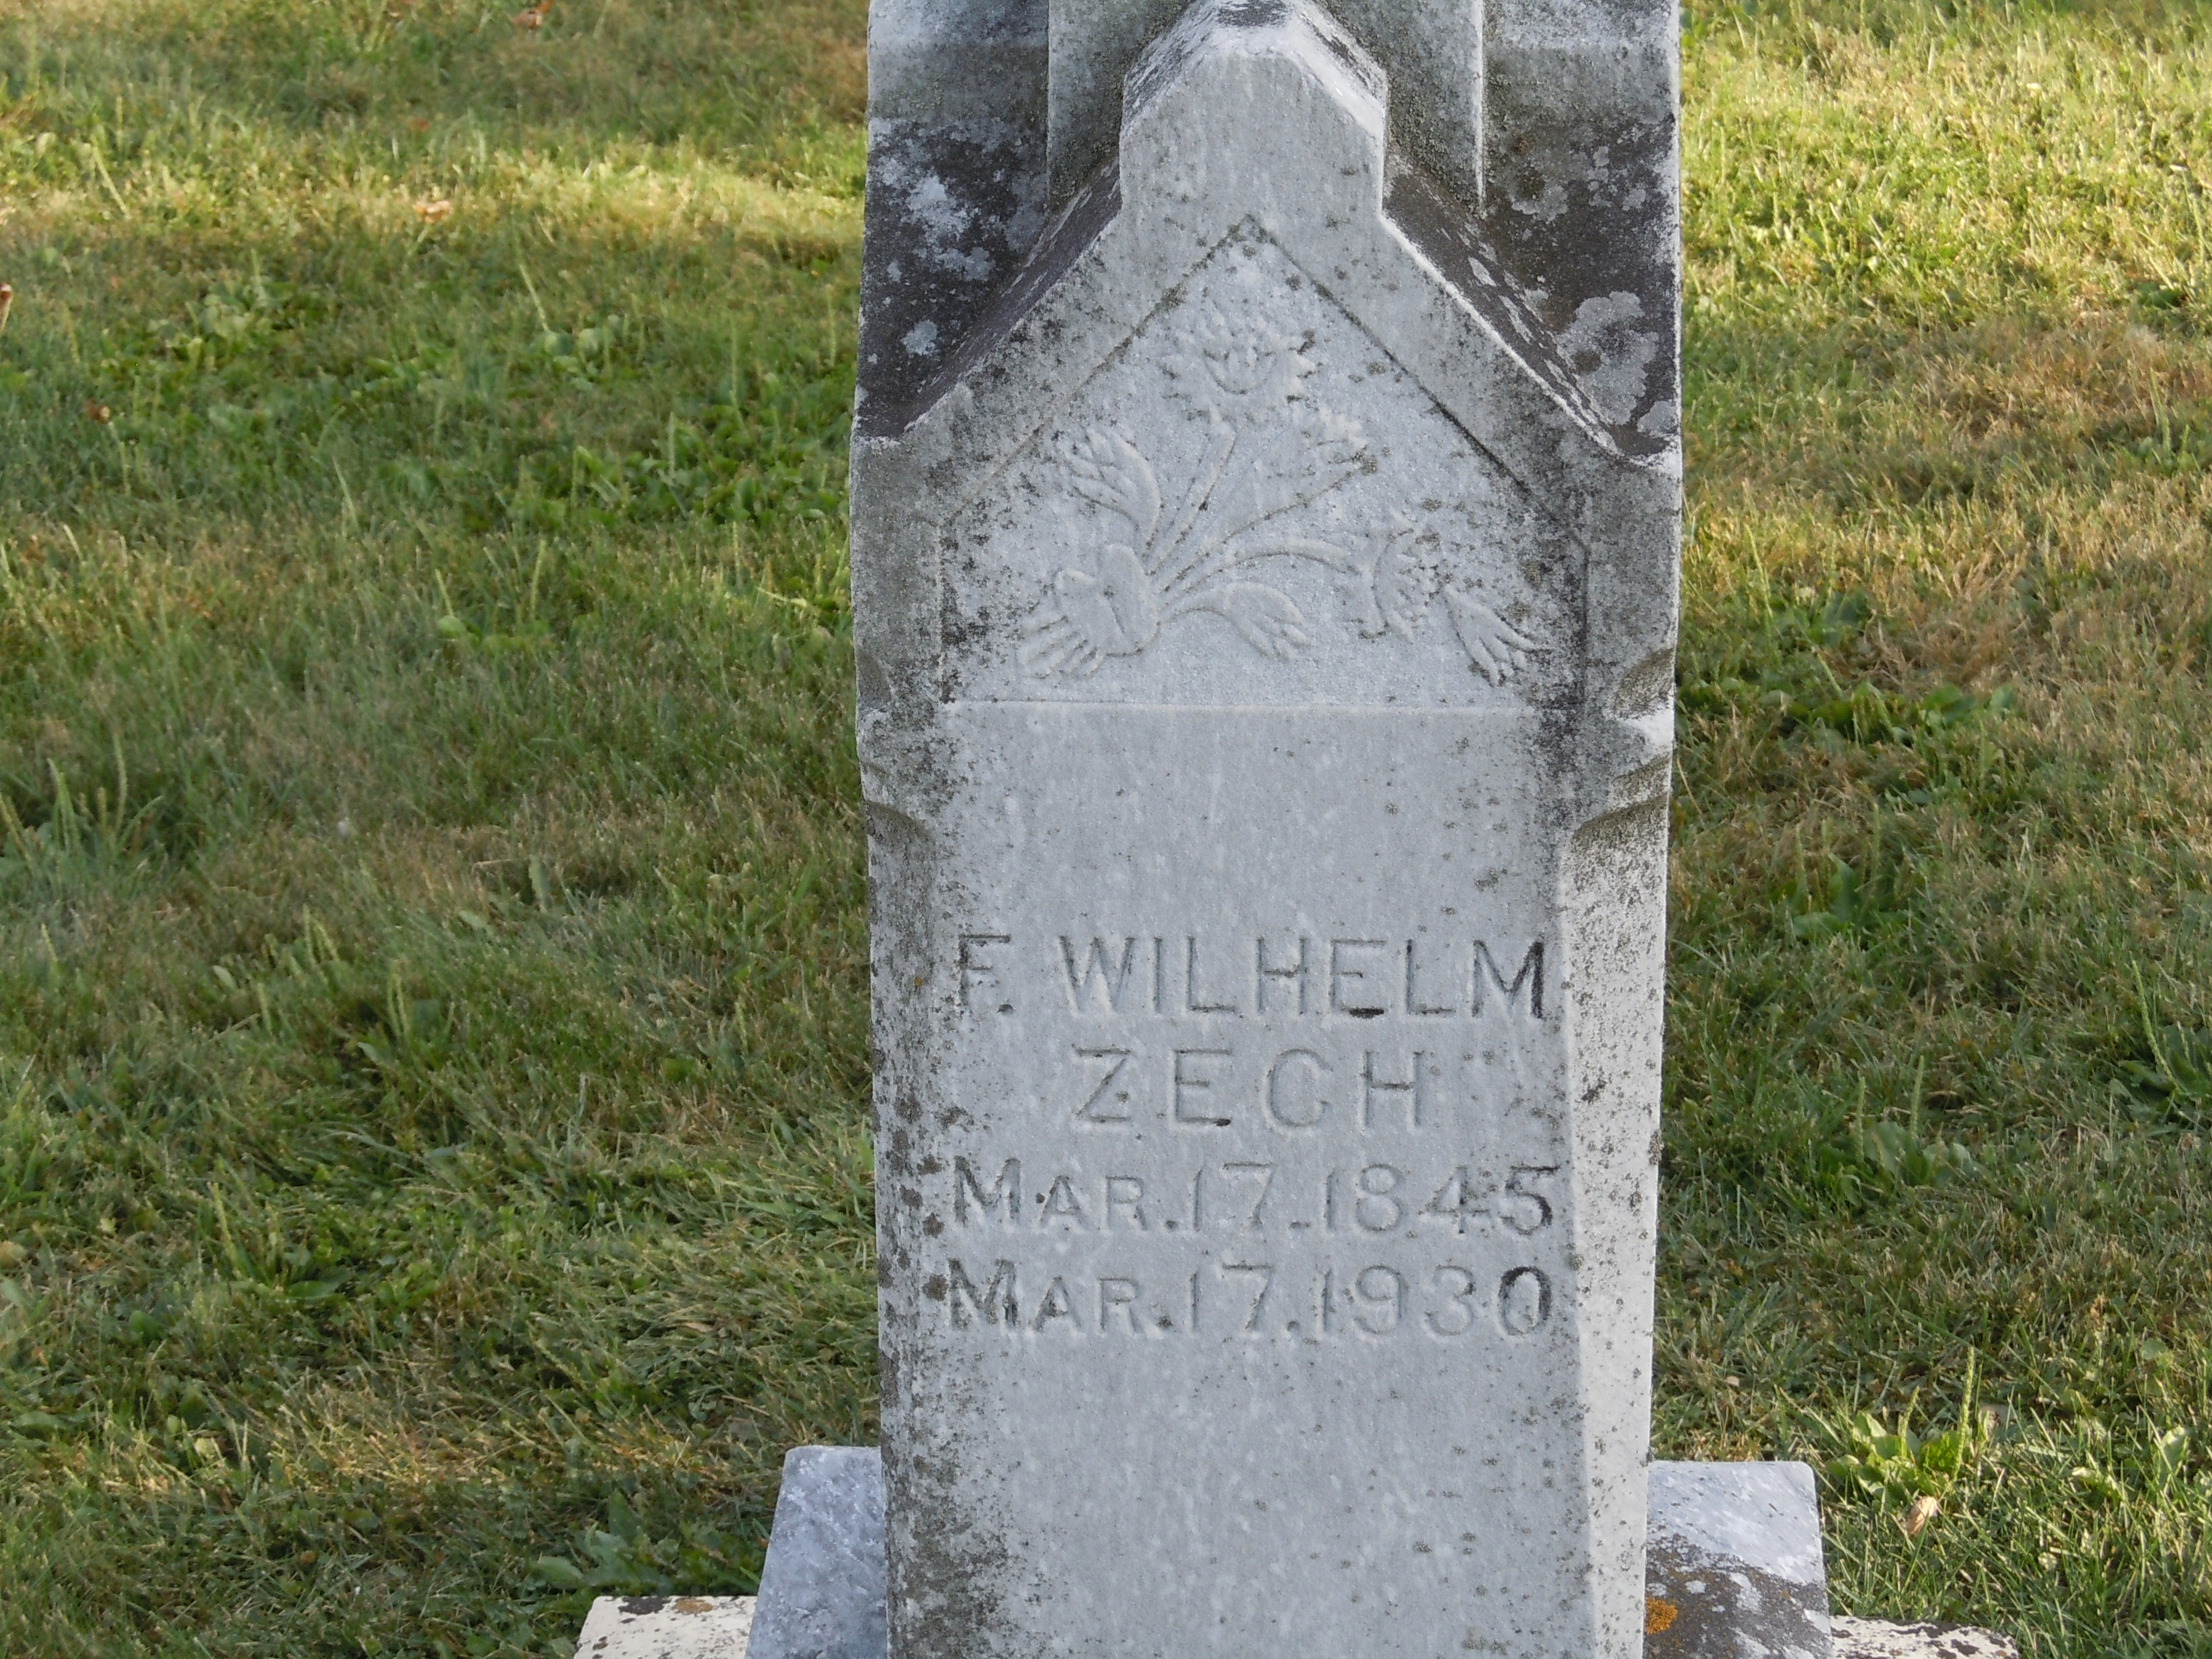 Frederick William Zech